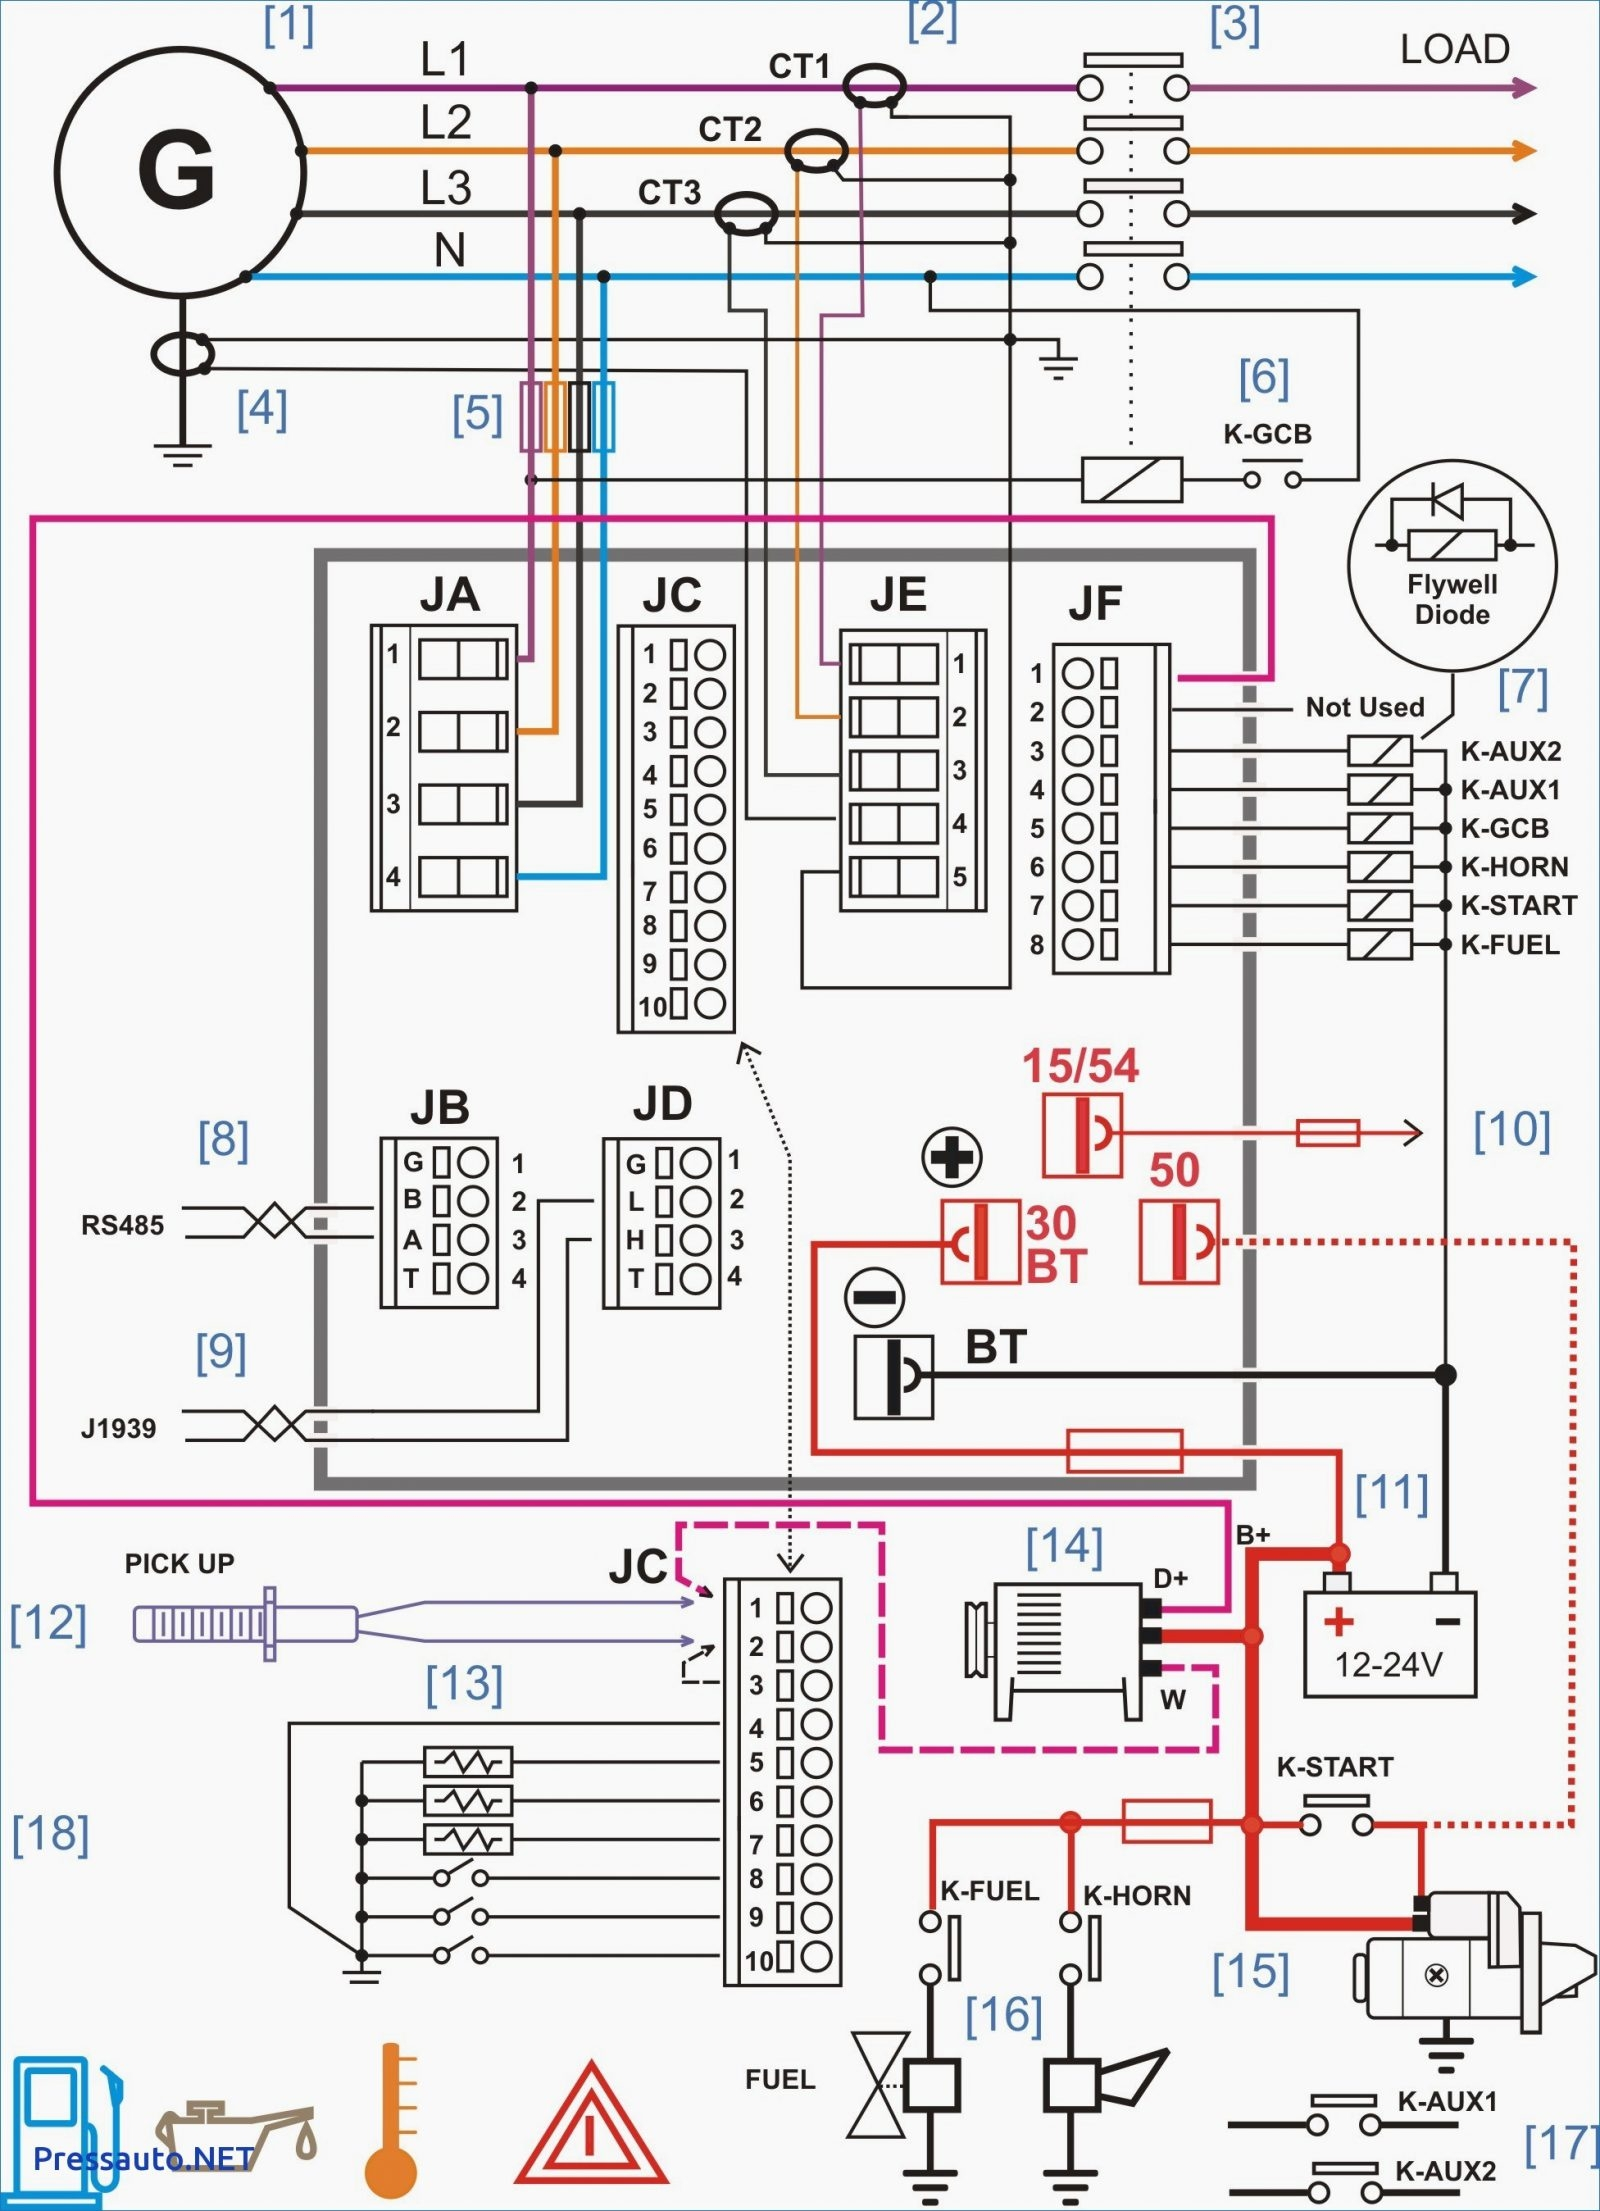 Asco Automatic Transfer Switch Series 300 Wiring Diagram - asco Automatic Transfer Switch Series 300 Wiring Diagram asco 7000 Series Automatic Transfer Switch Wiring 6b